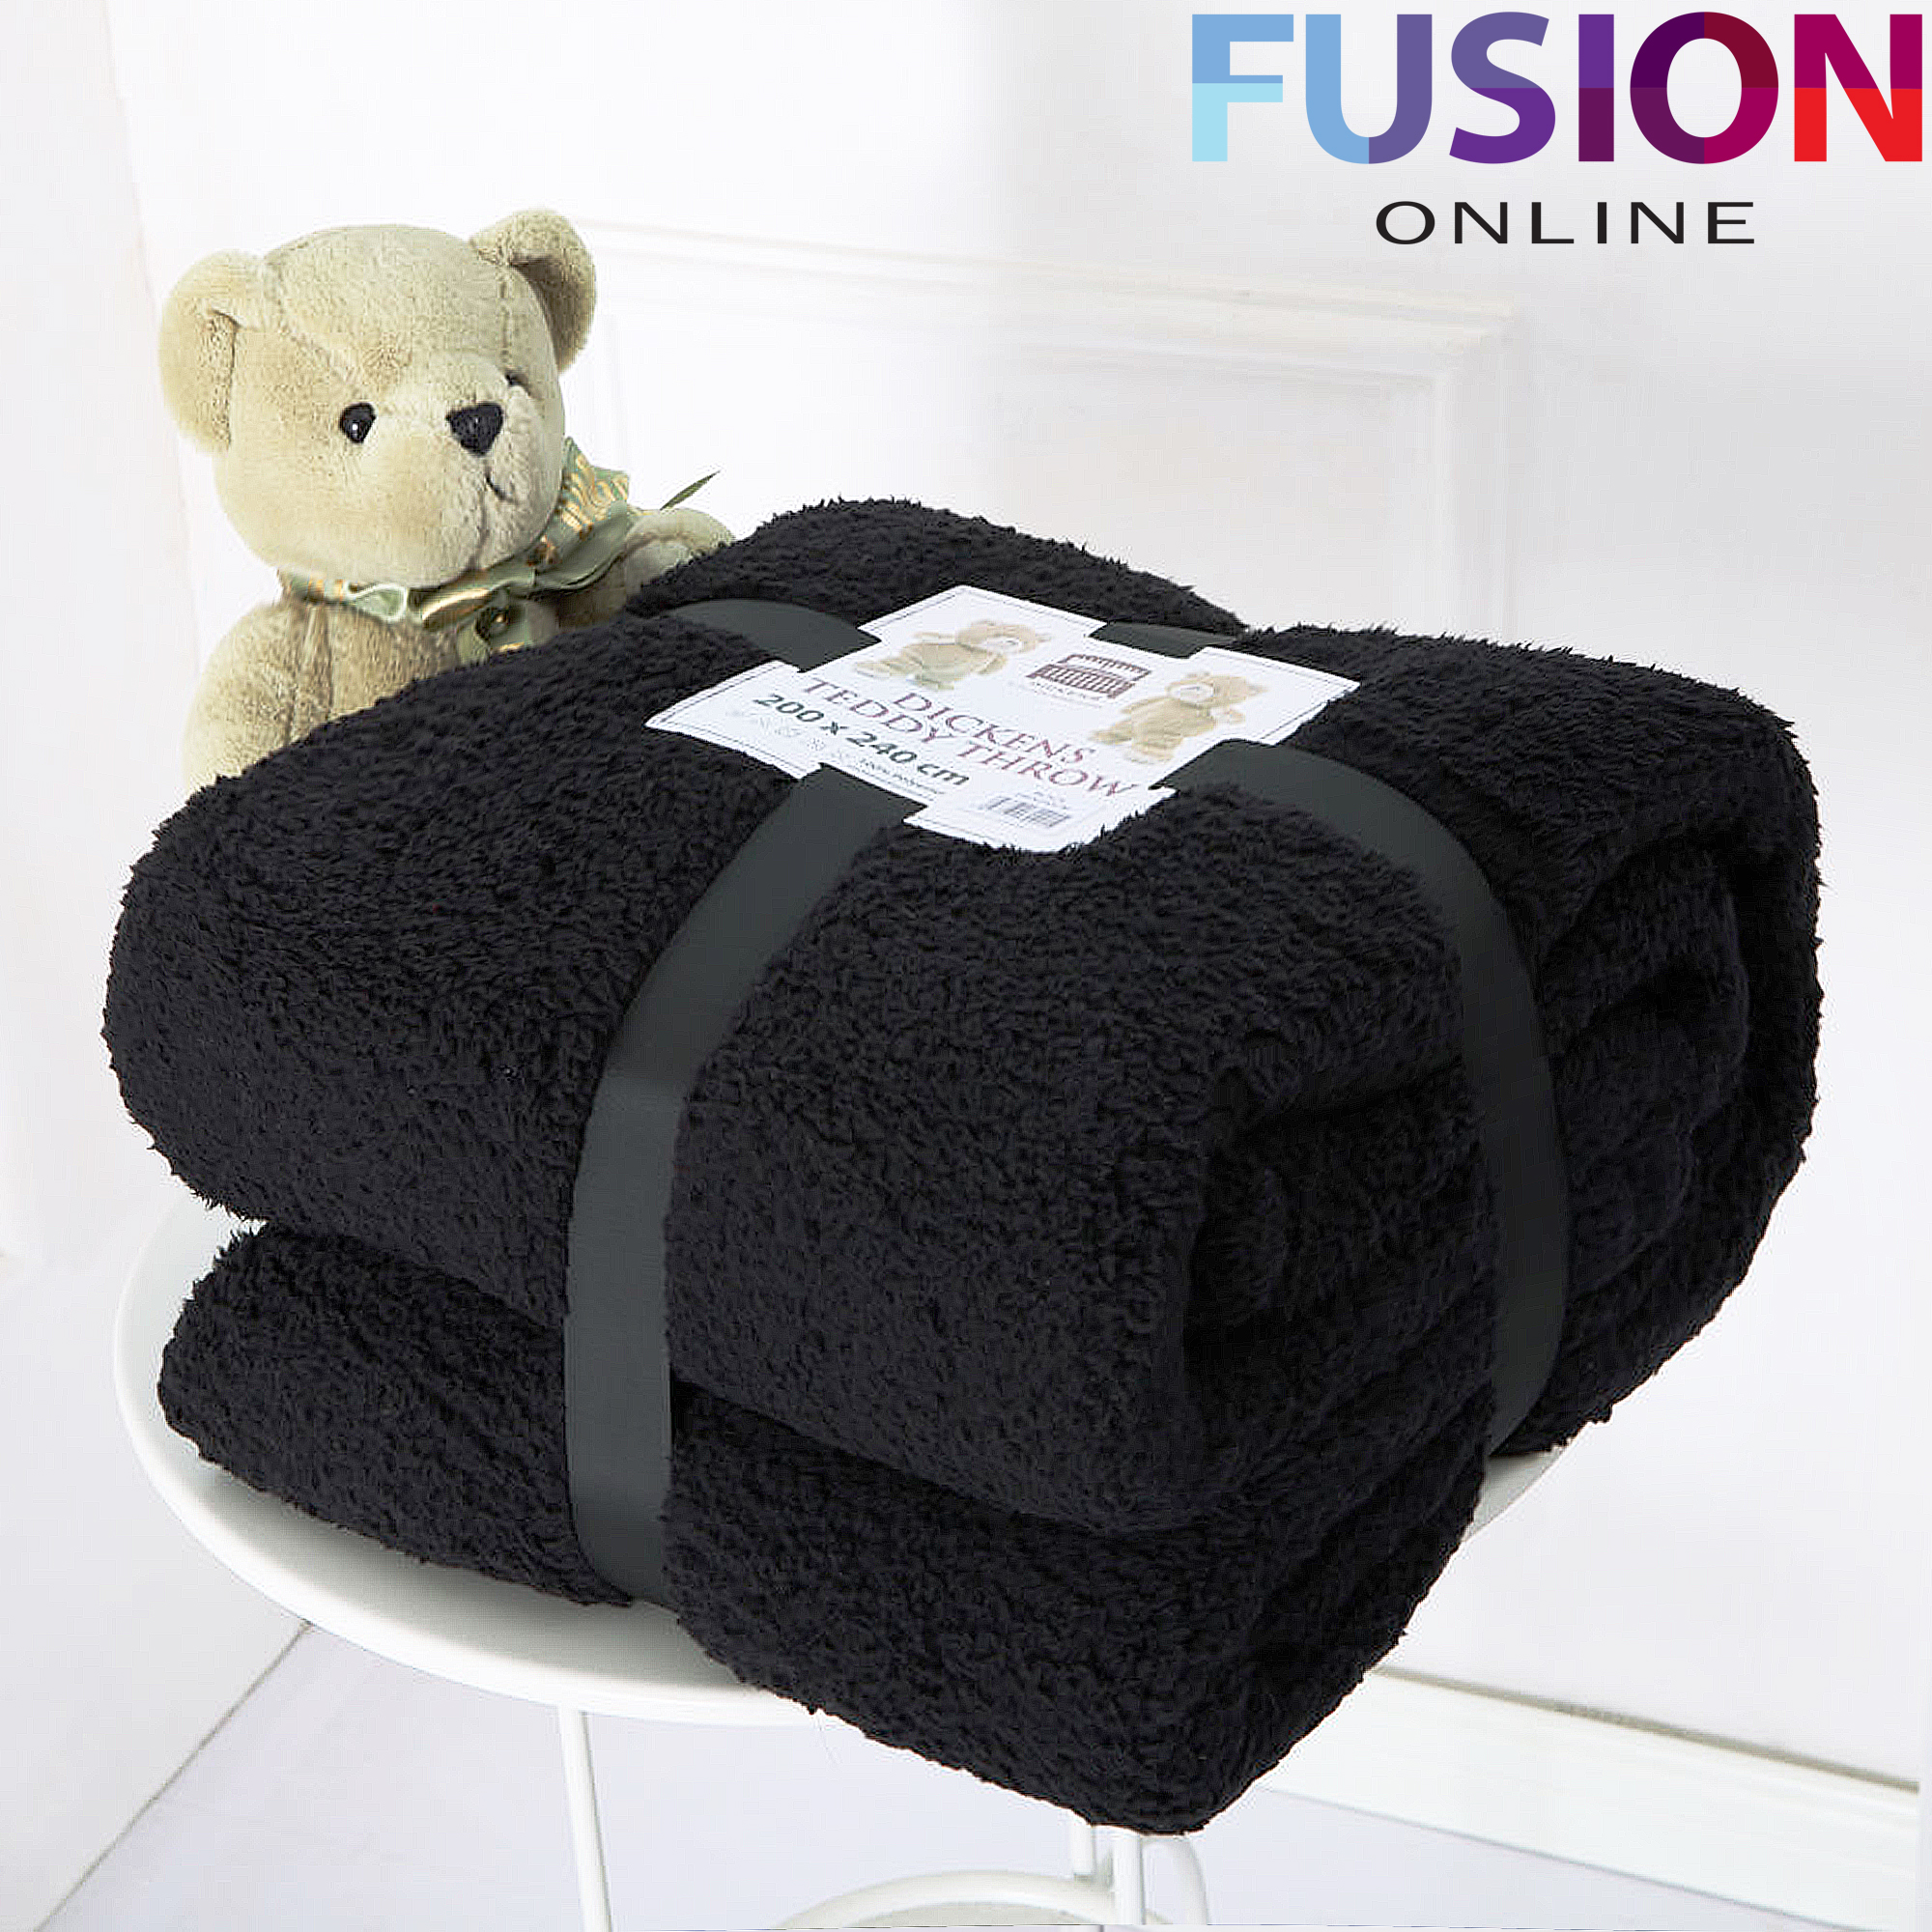 LUXURY THICK WARM SOFT TEDDY BEAR SHERPA FLEECE BLANKET SOFA BED THROW